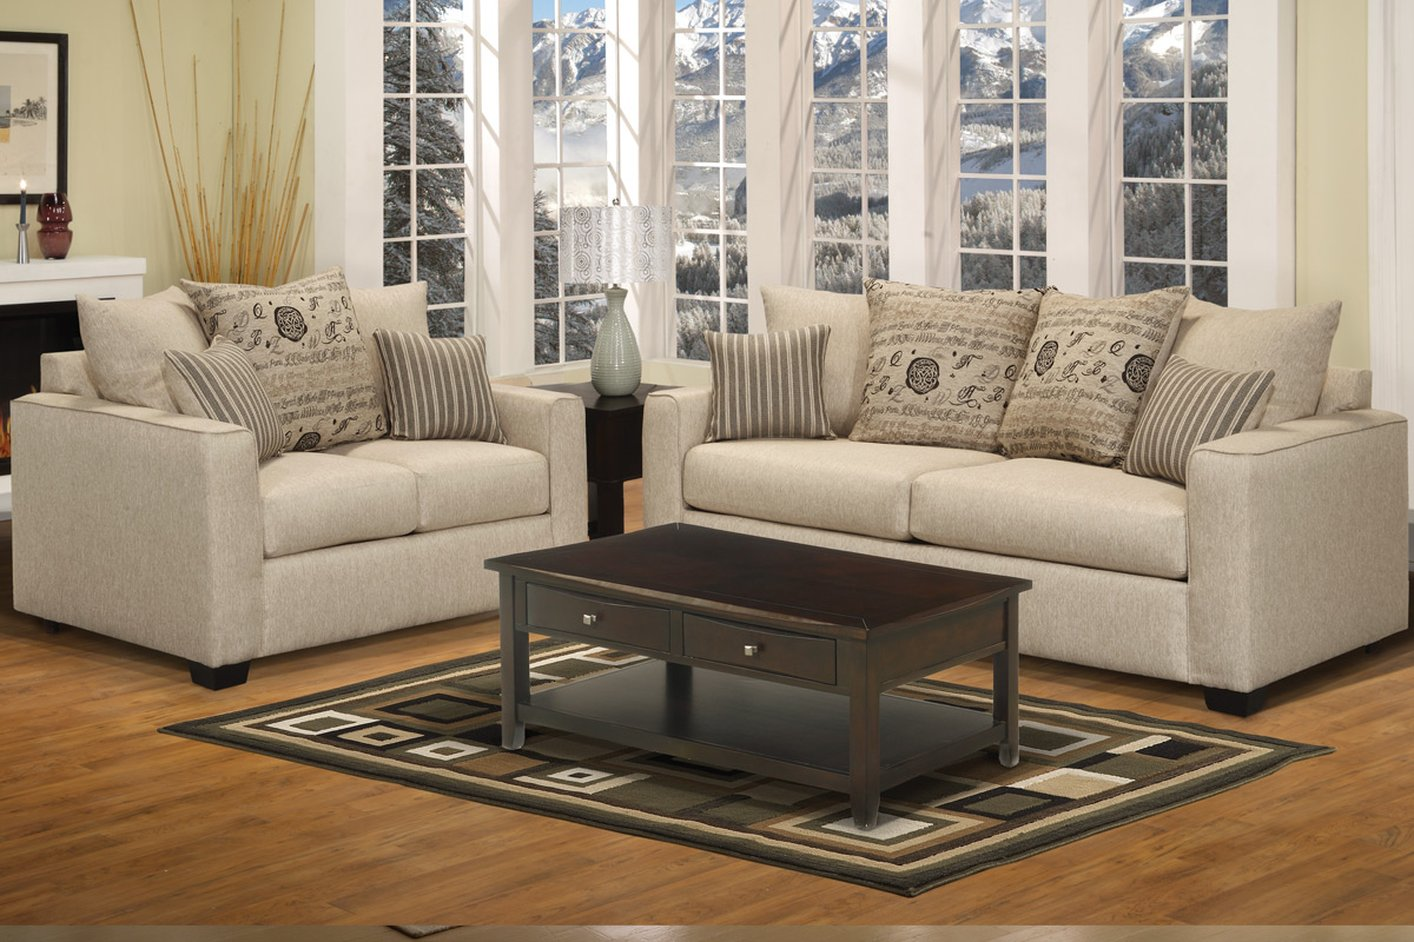 sofa and loveseat set Sofa & Loveseat Set   Steal A Sofa Furniture Outlet Los Angeles CA sofa and loveseat set